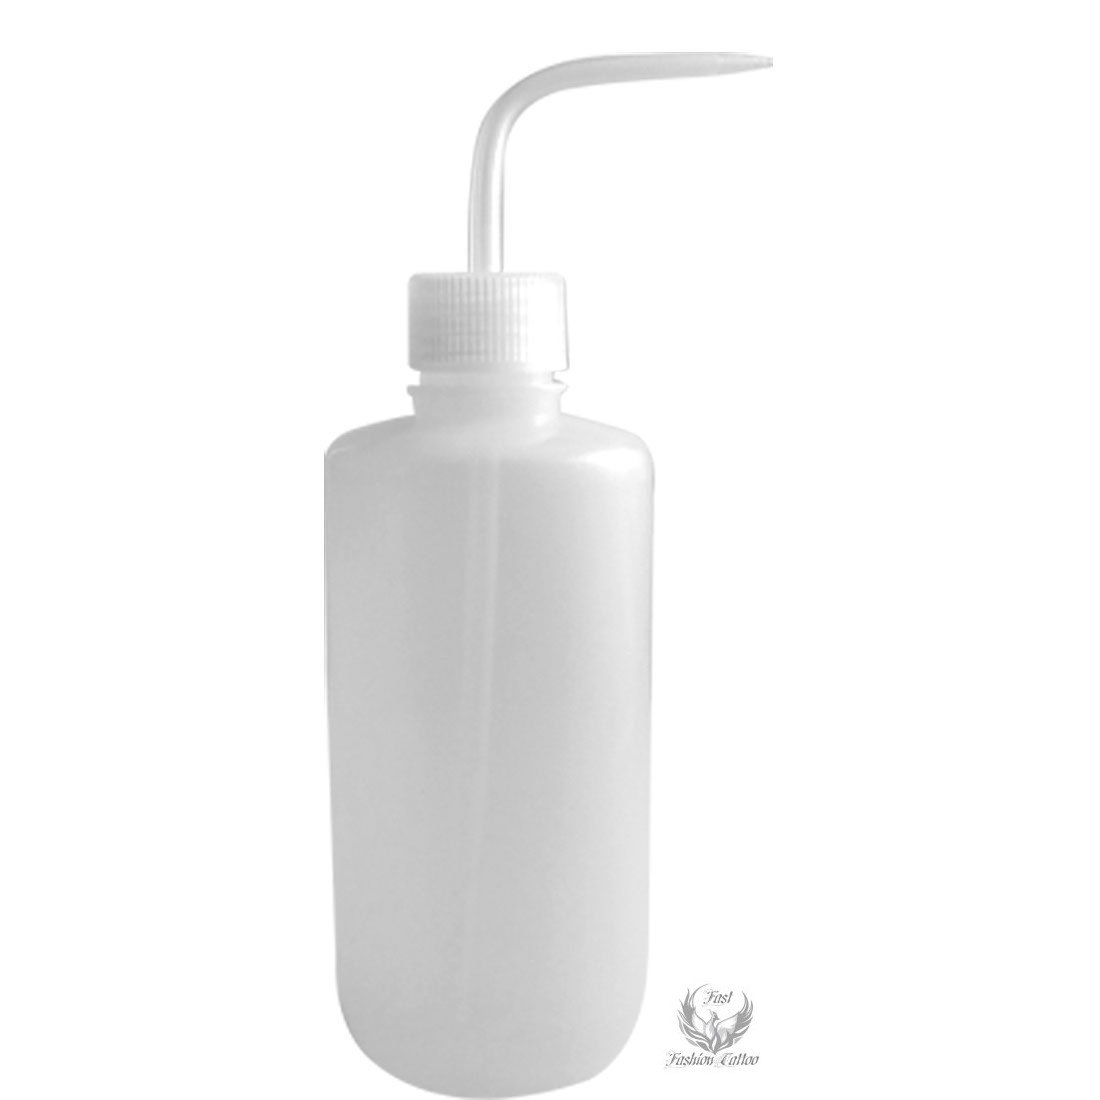 8oz Diffuser Squeeze Bottle